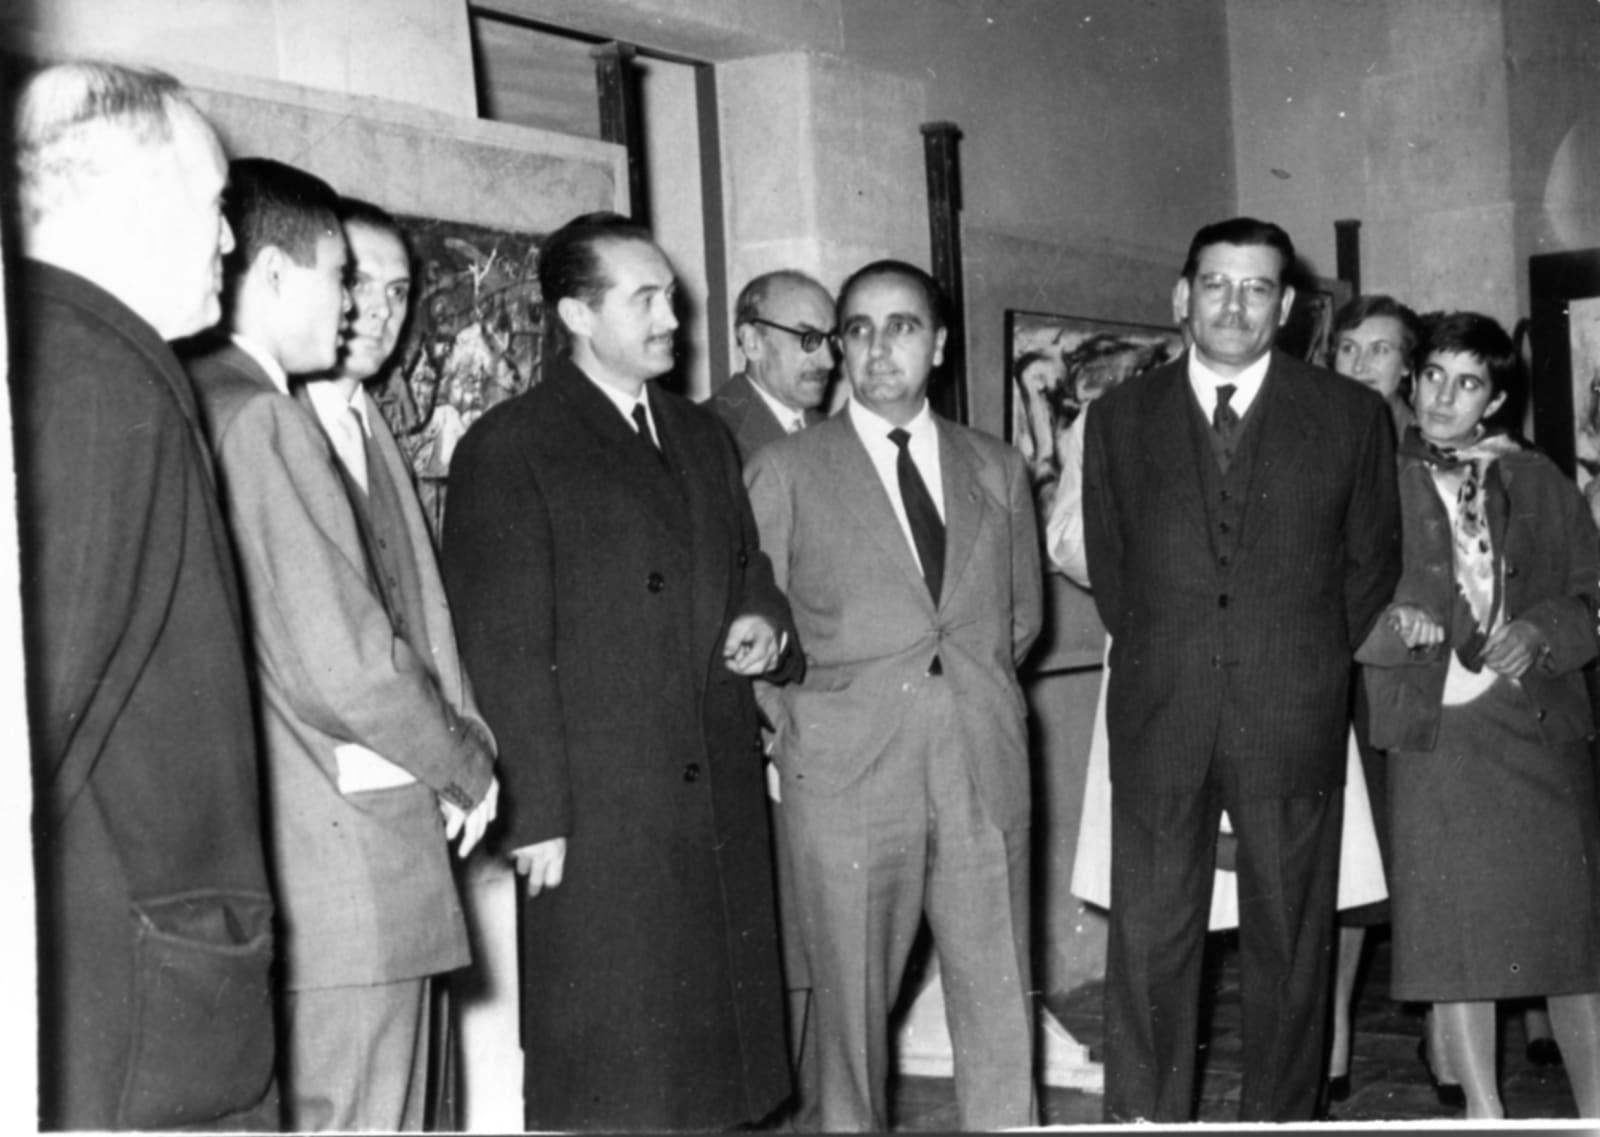 Nov 1958, Hsiao Chin (2nd from the left) and Mayor of Barcelona (Middle) at 2nd Ton-Fan Art Group Painting Exhibition 1958年蕭勤(左二)與巴塞隆納市長(中)於第二屆「東方畫展」